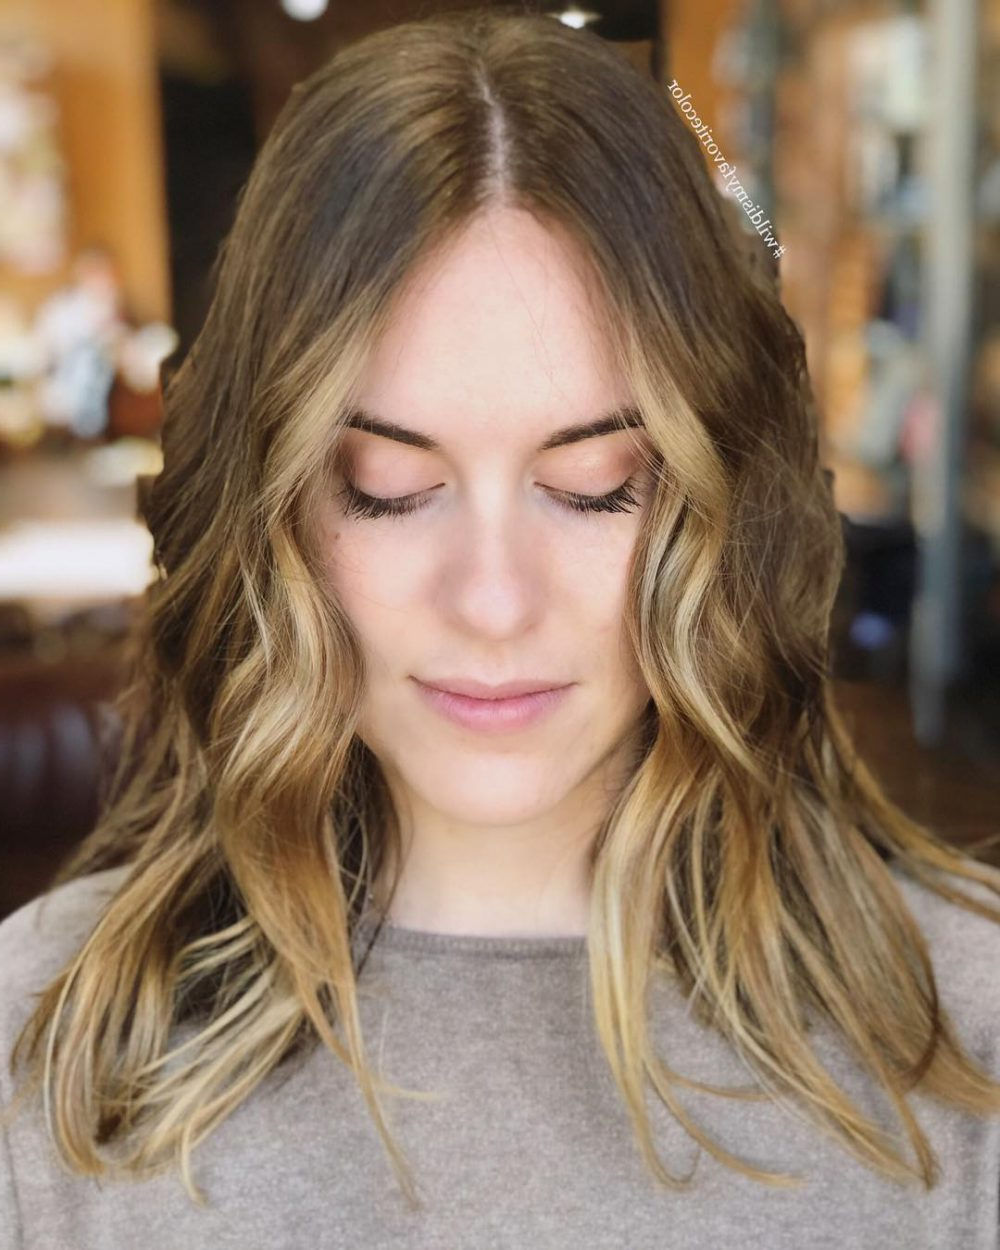 17 Flattering Medium Hairstyles For Round Faces In 2019 Pertaining To Favorite Medium Haircuts For Circle Faces (View 1 of 20)